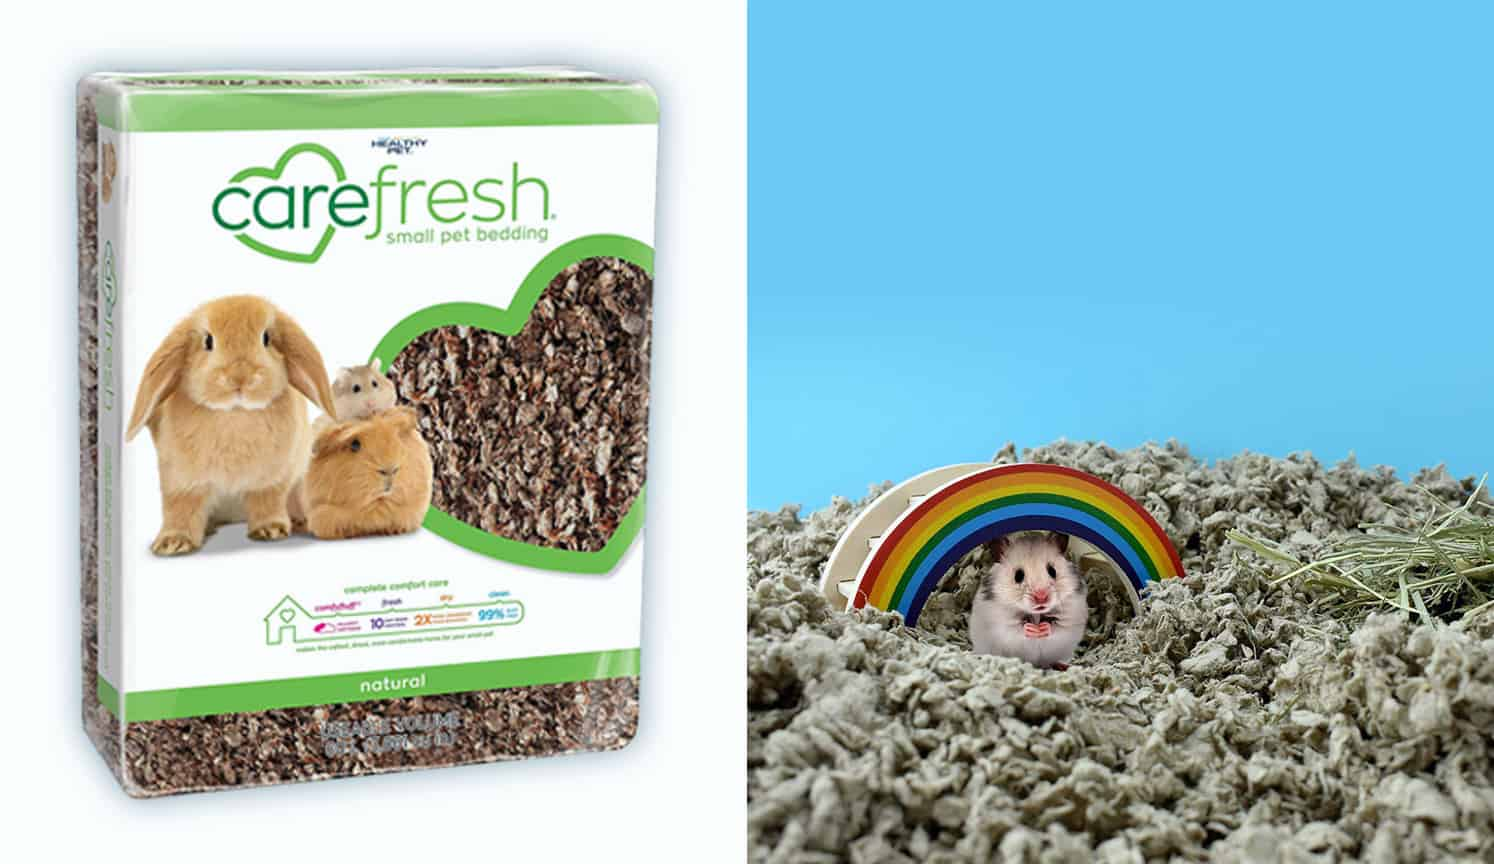 Carefresh Pet Bedding as the second related product of the Best Rabbit Bedding